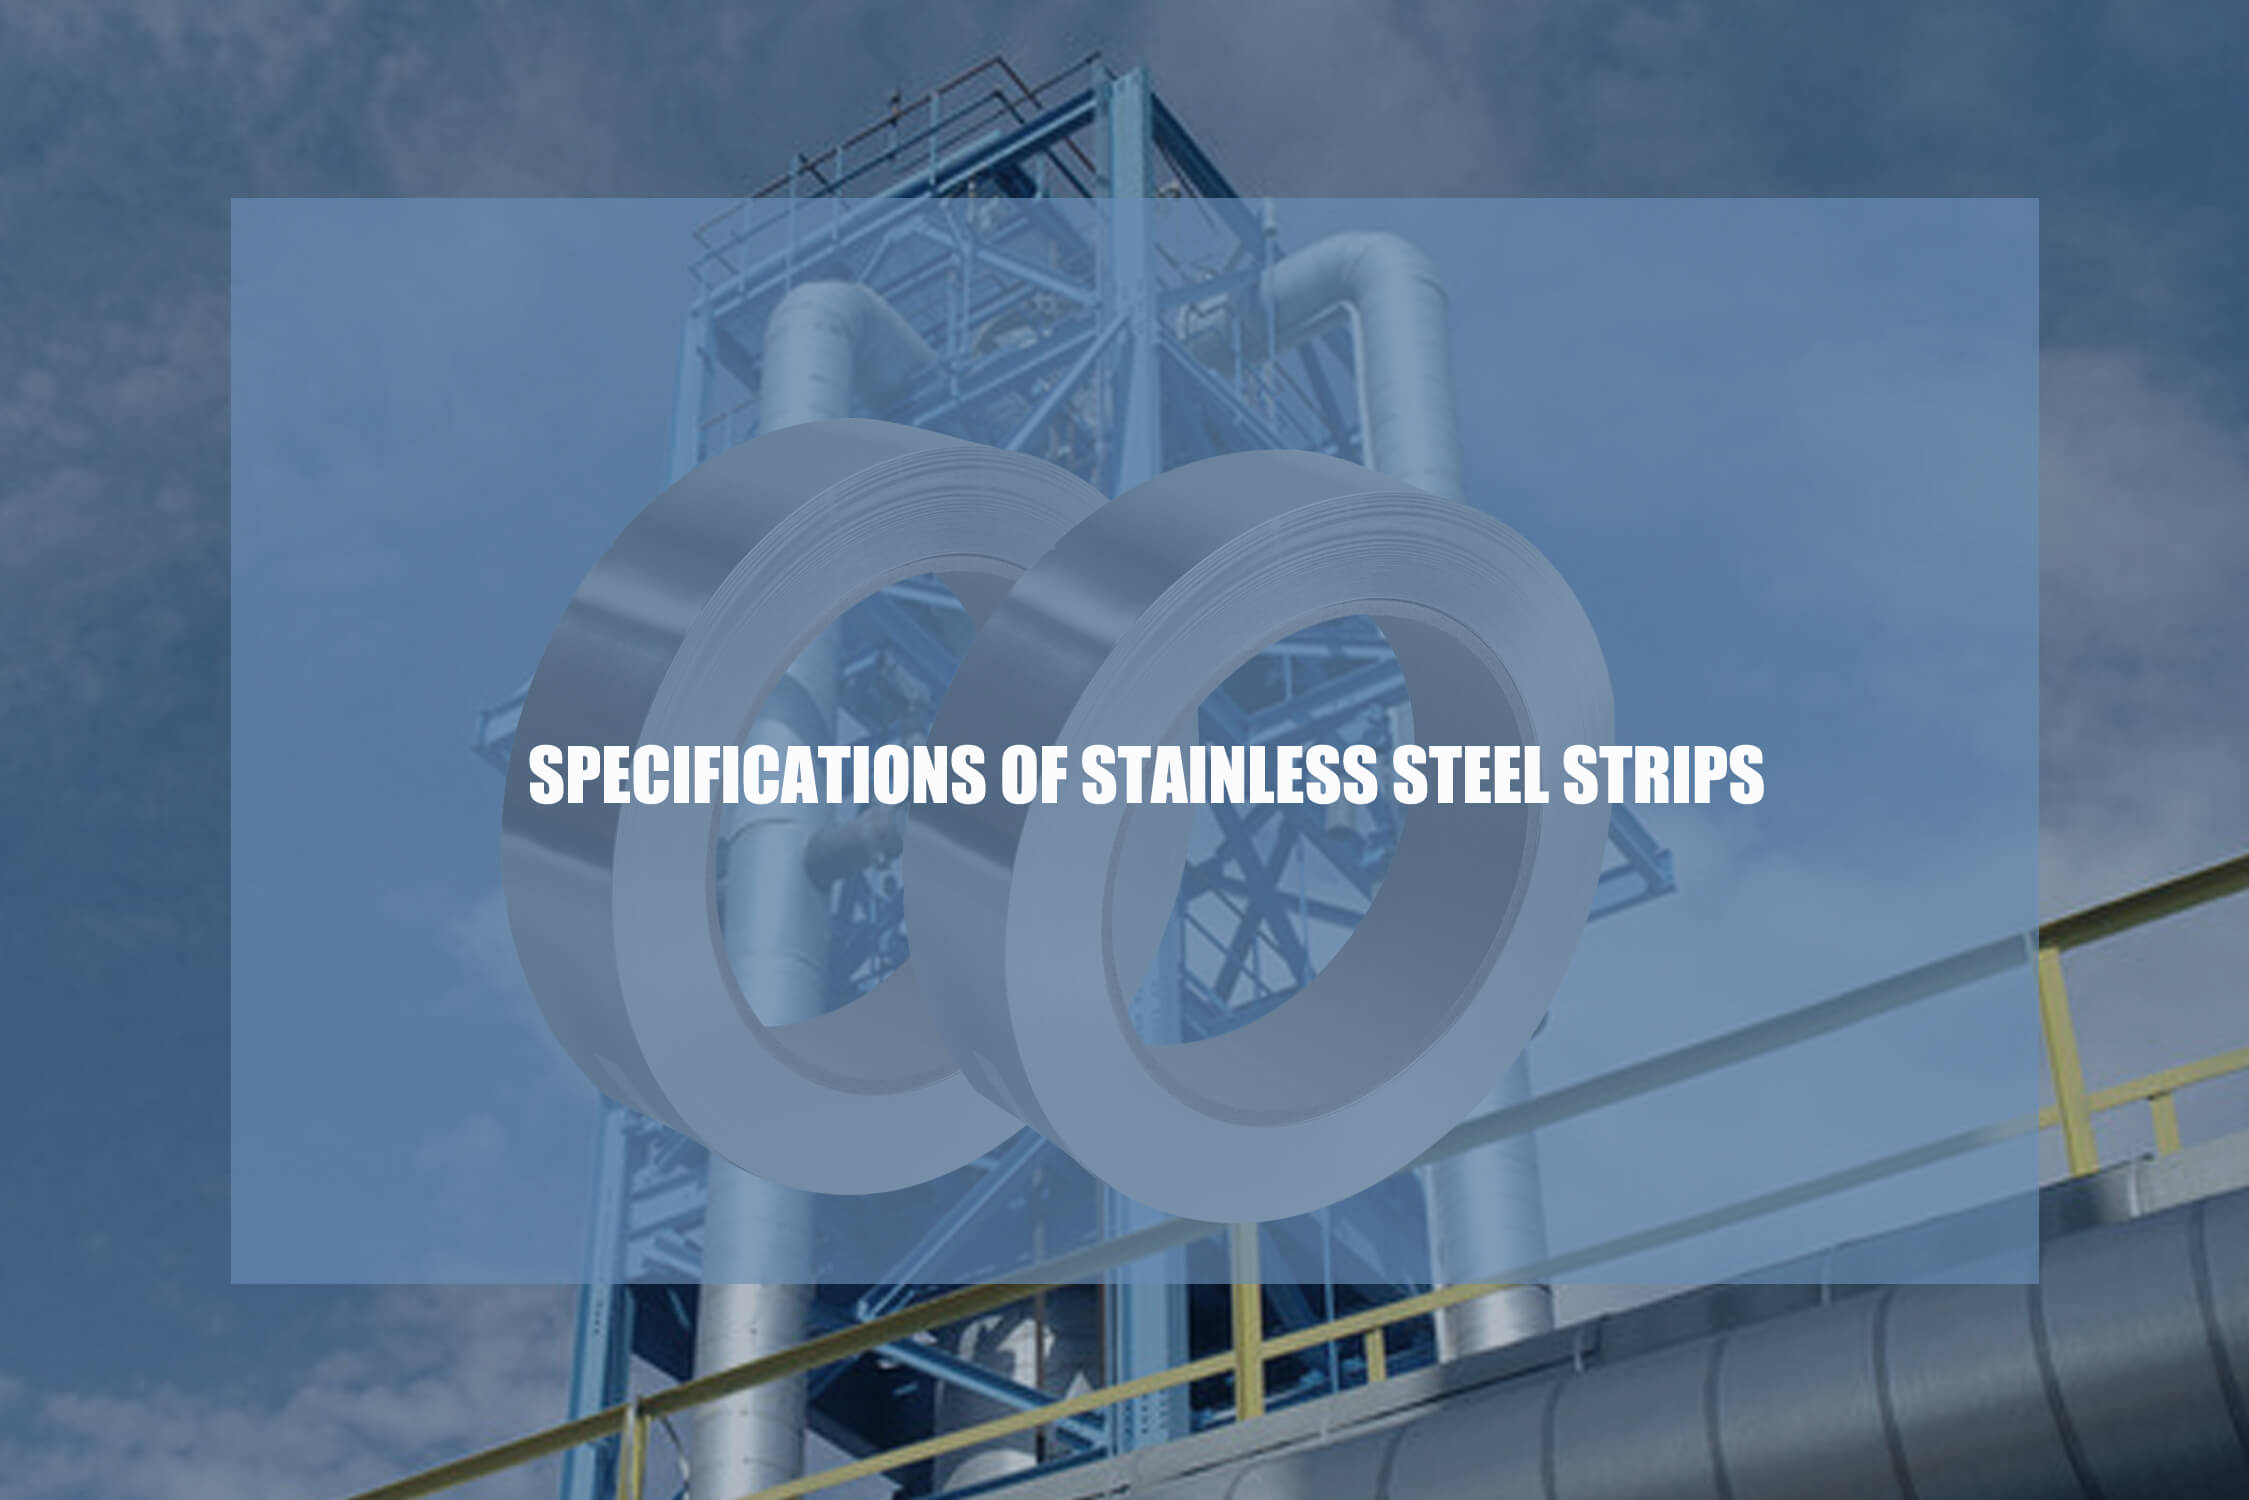 specifications-of-stainless-steel-strips